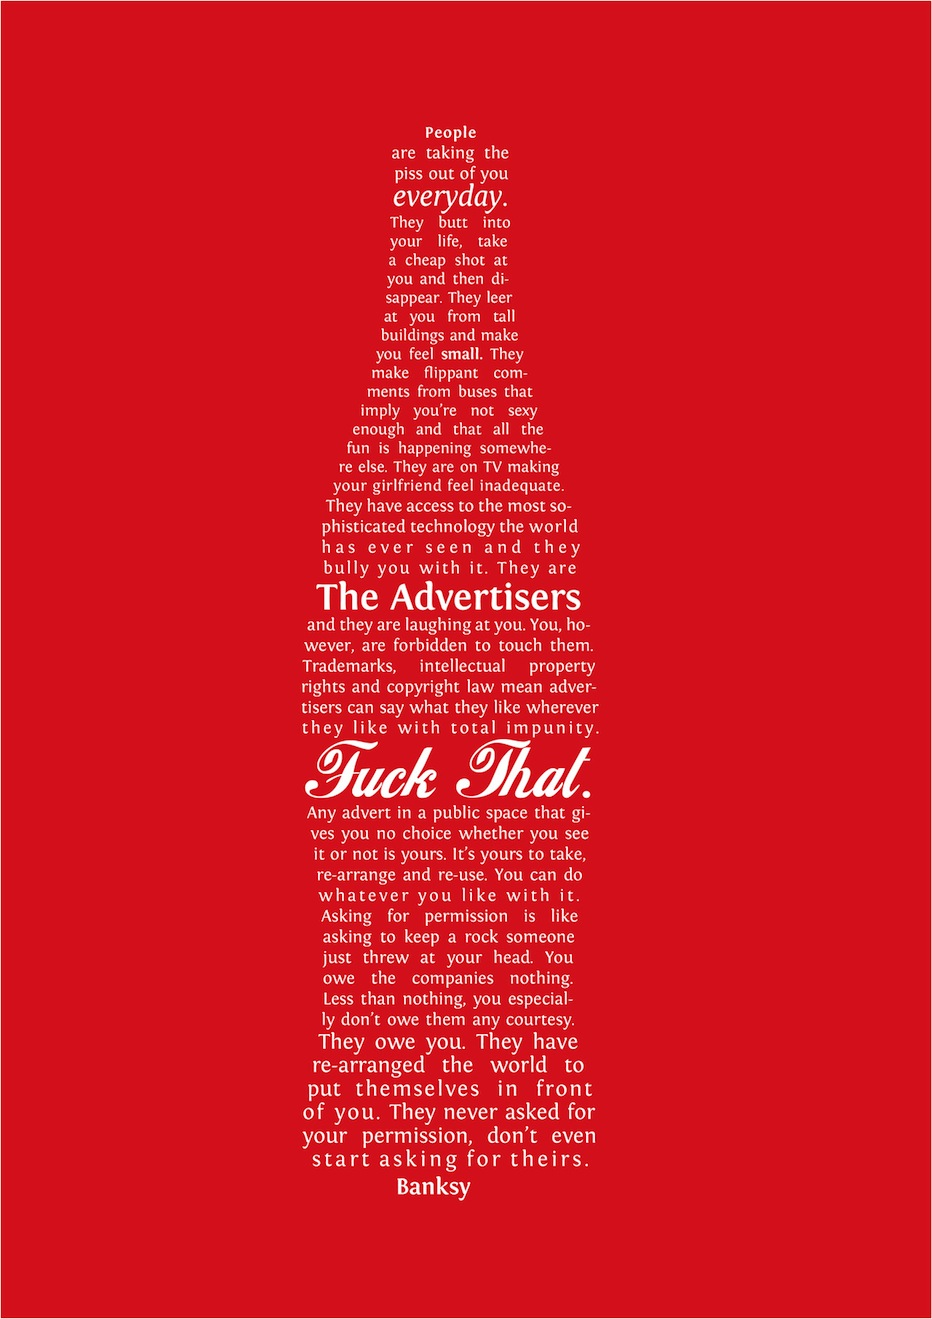 Coca Cola Quotes Typographic Antiad Forms 'banksy's Quote' Into The Shape Of A